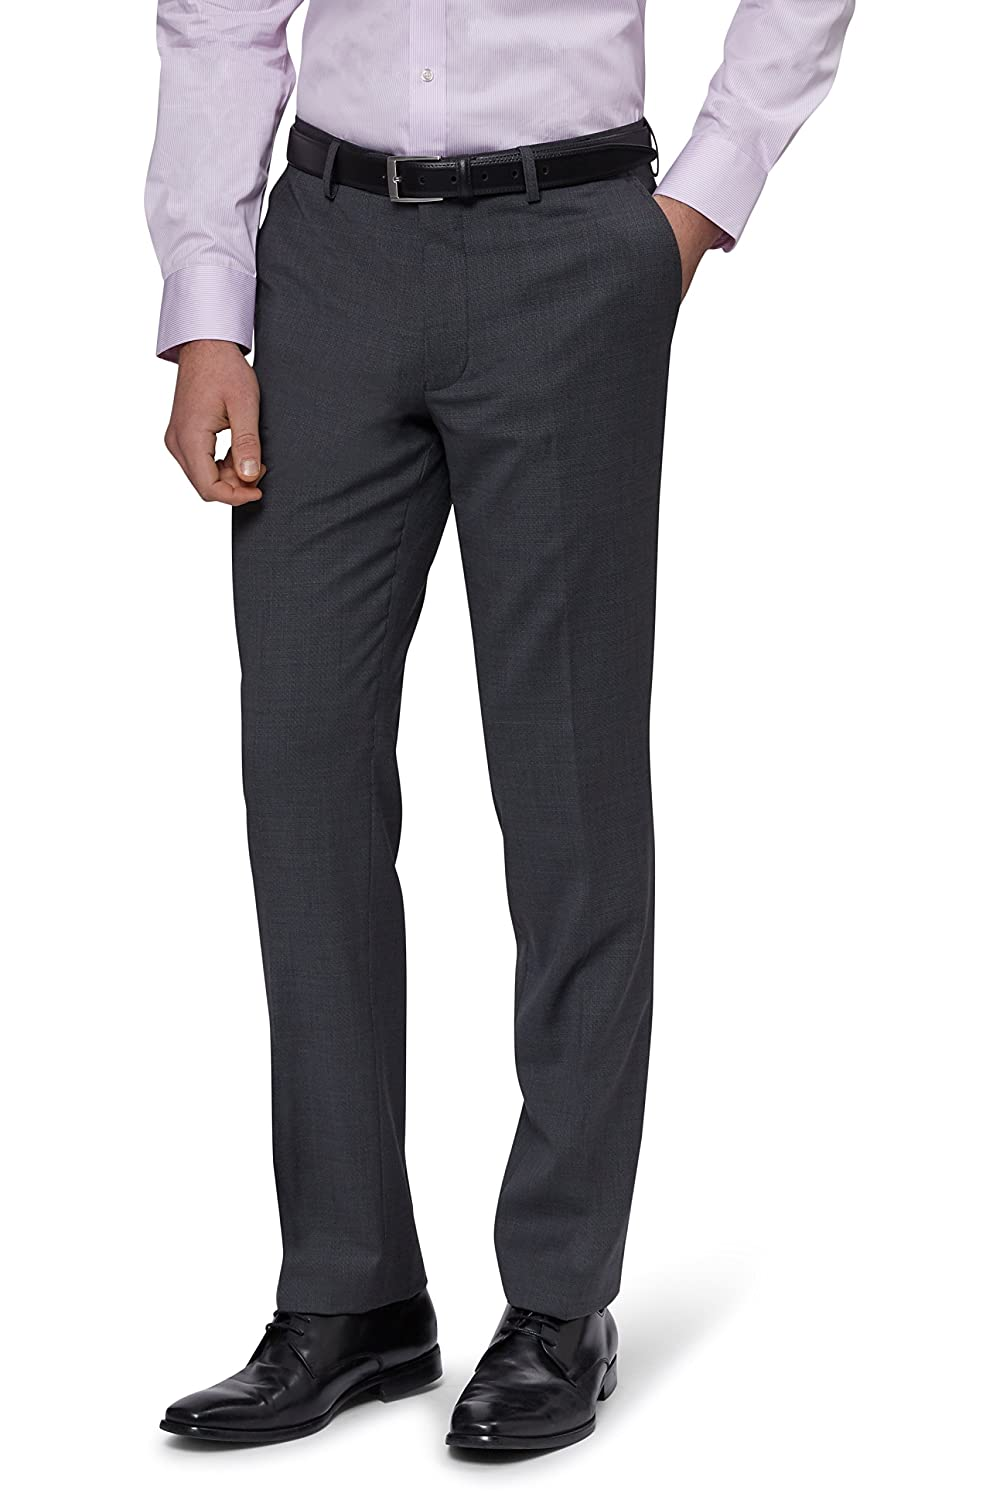 Moss 1851 Tailored Fit Grey Basket Weave Trousers